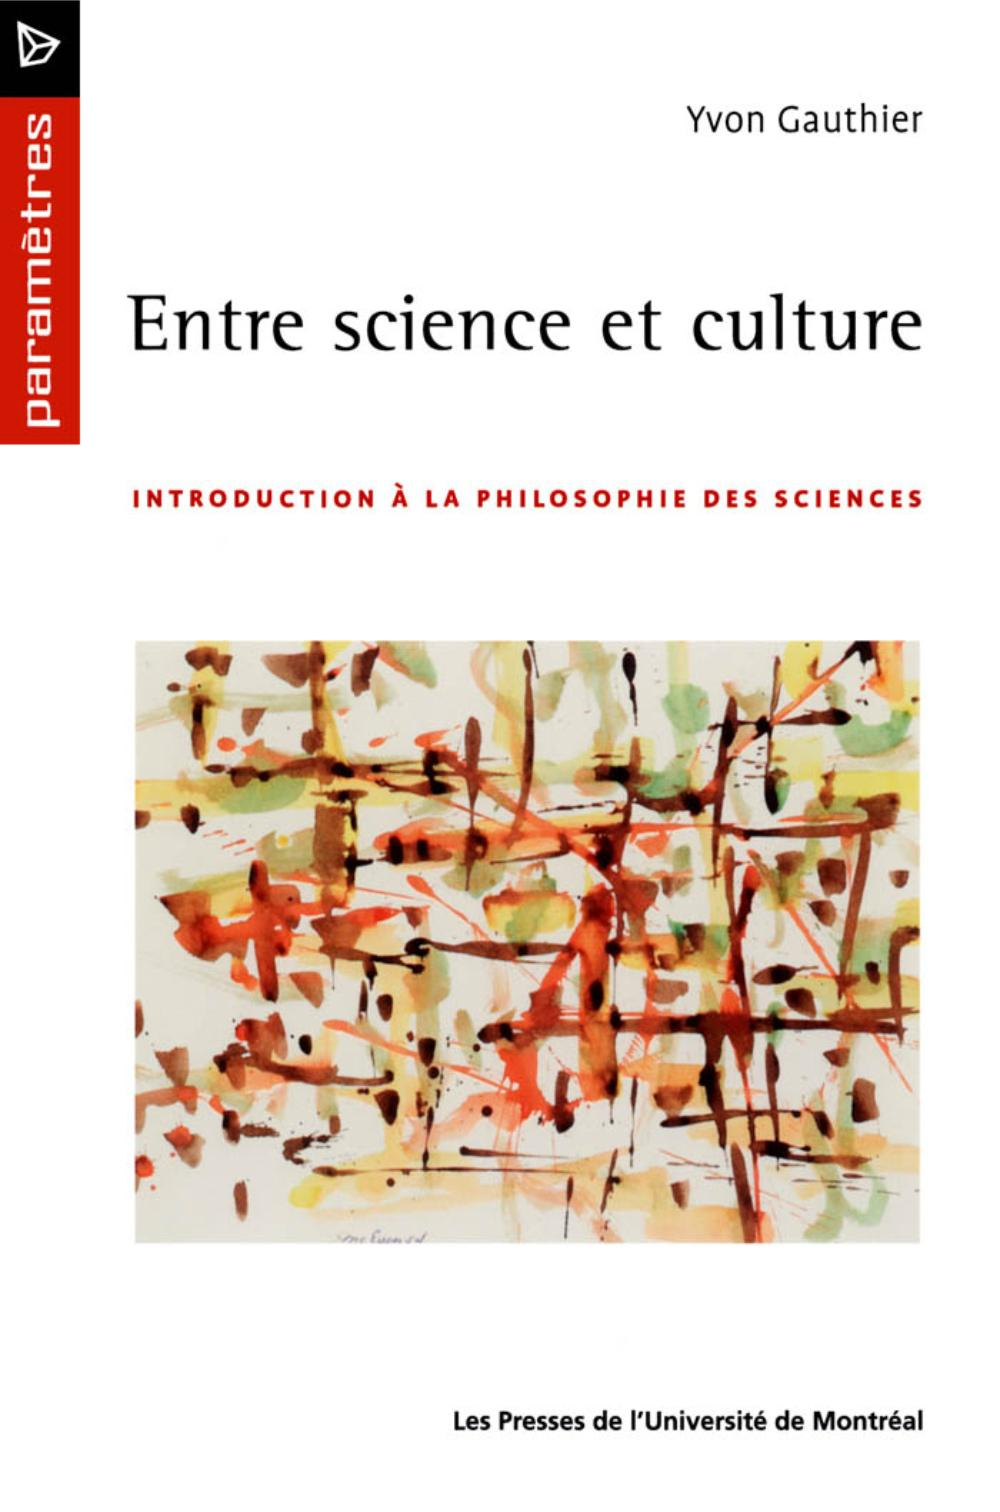 ENTRE SCIENCE ET CULTURE. INTRODUCTION A LA PHILOSOPHIE DES SCIENCES